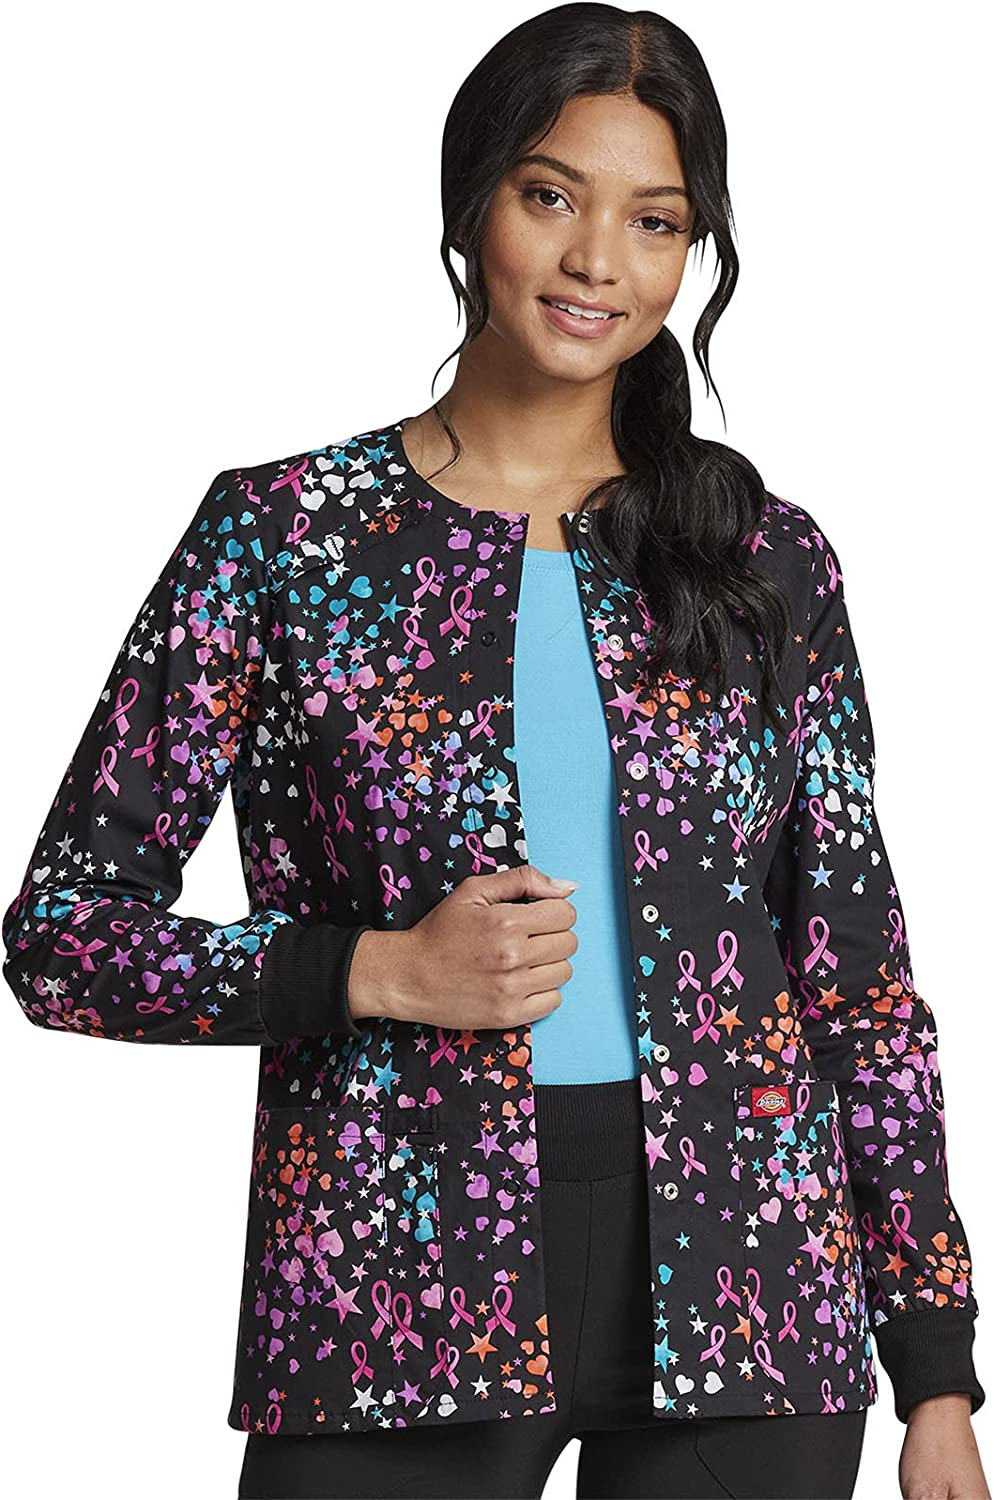 Dickies Women's Snap Front Warm-up Jacket: Clothing, Shoes & Jewelry